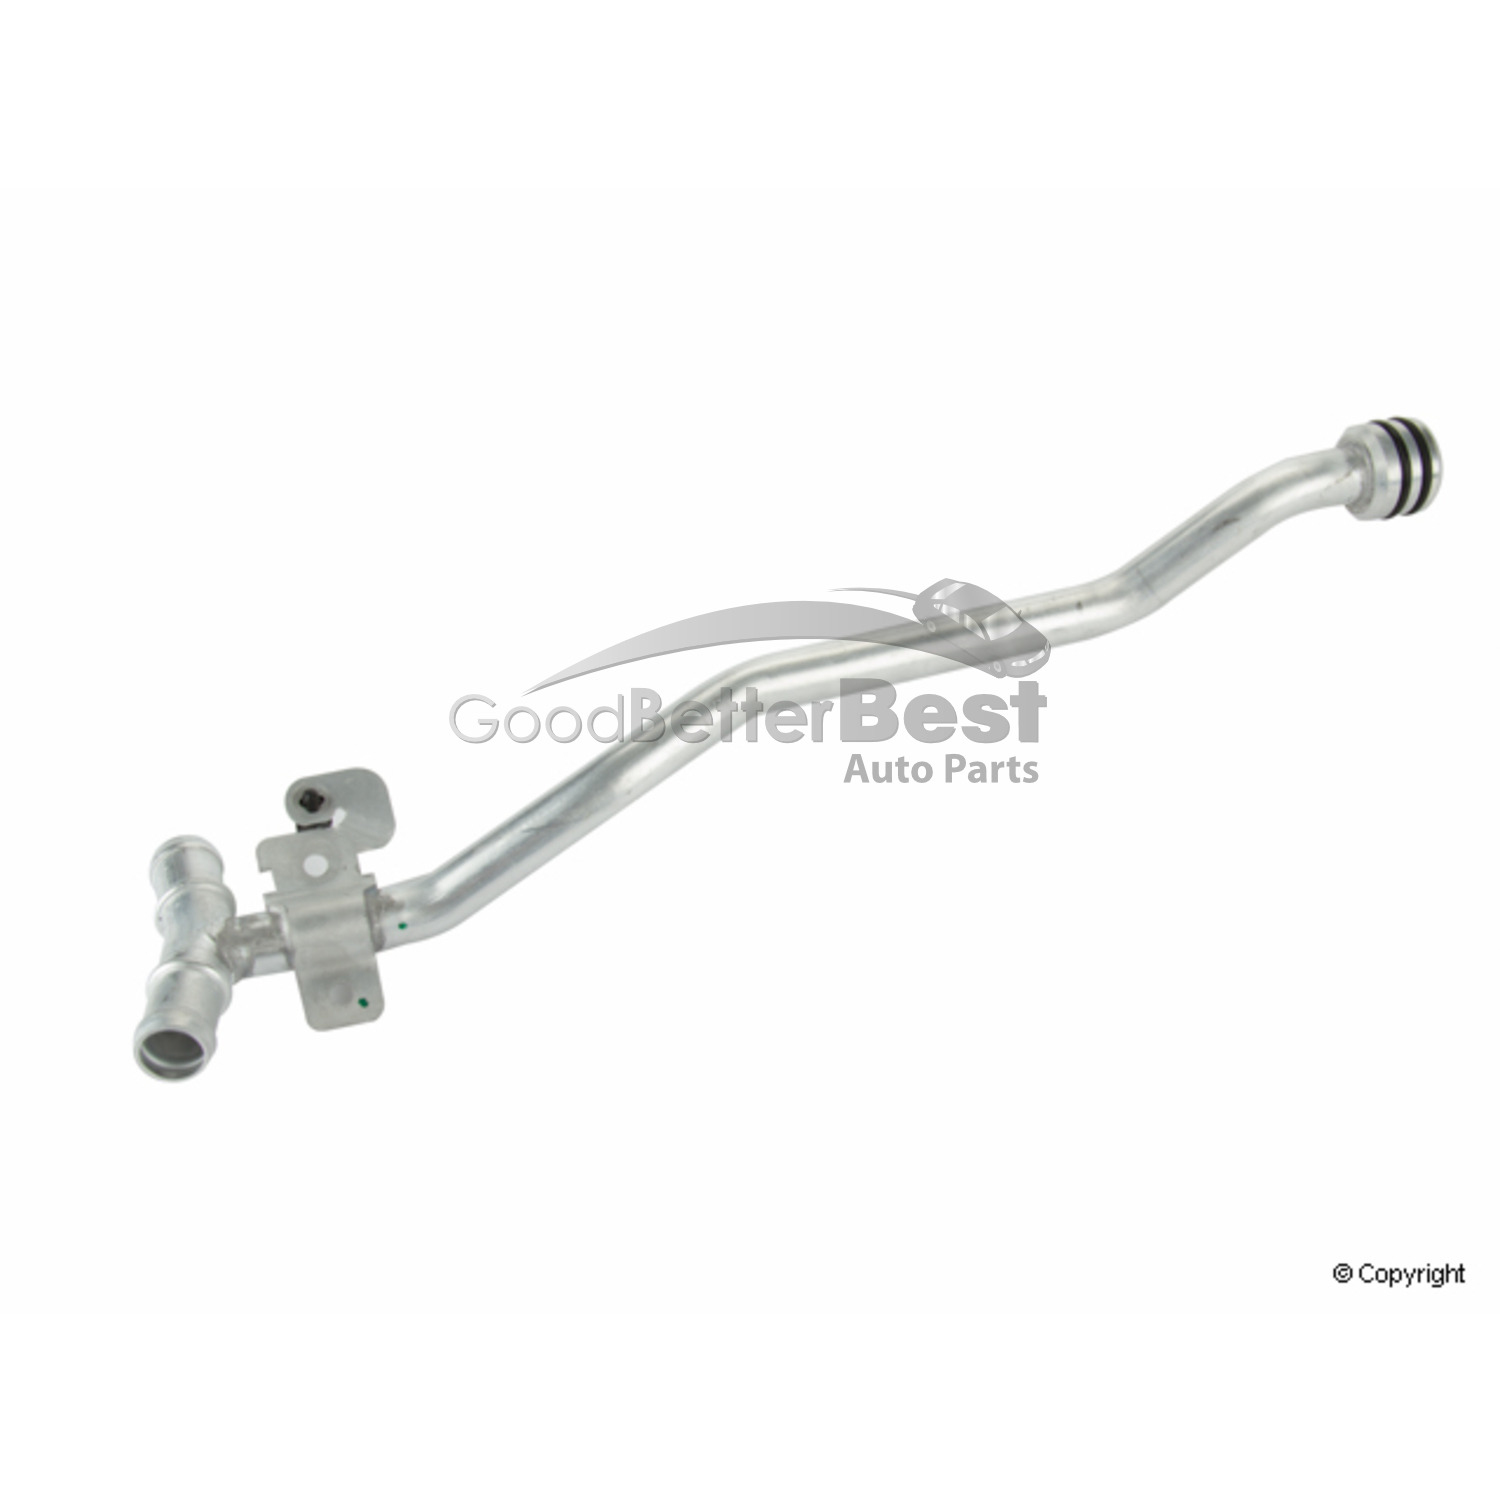 New Genuine Engine Coolant Pipe 94810606910 for Porsche